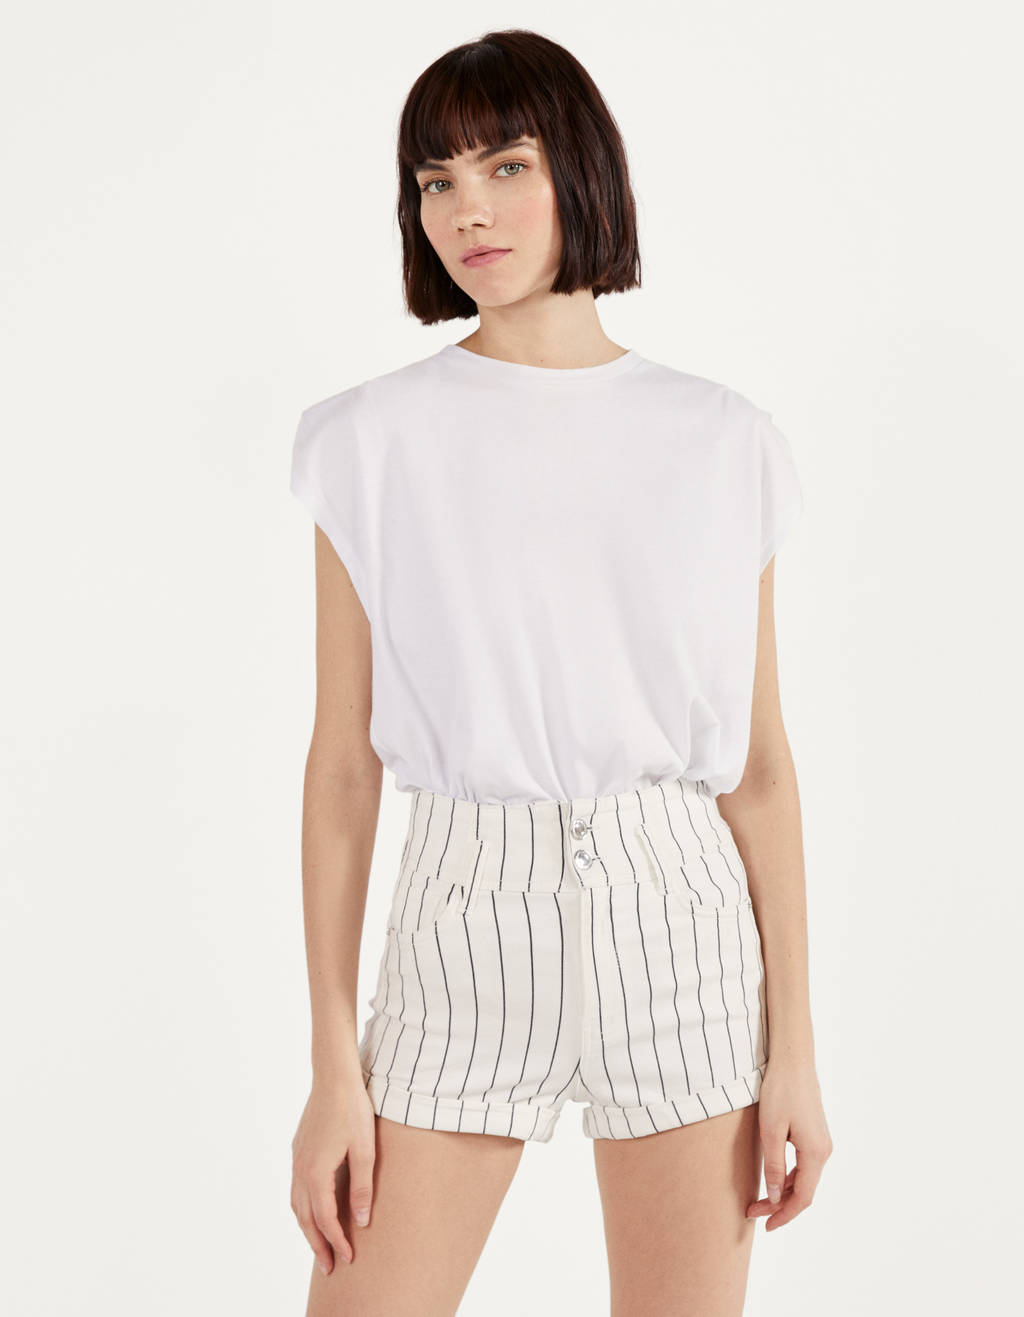 High Waist shorts with turn-up hems